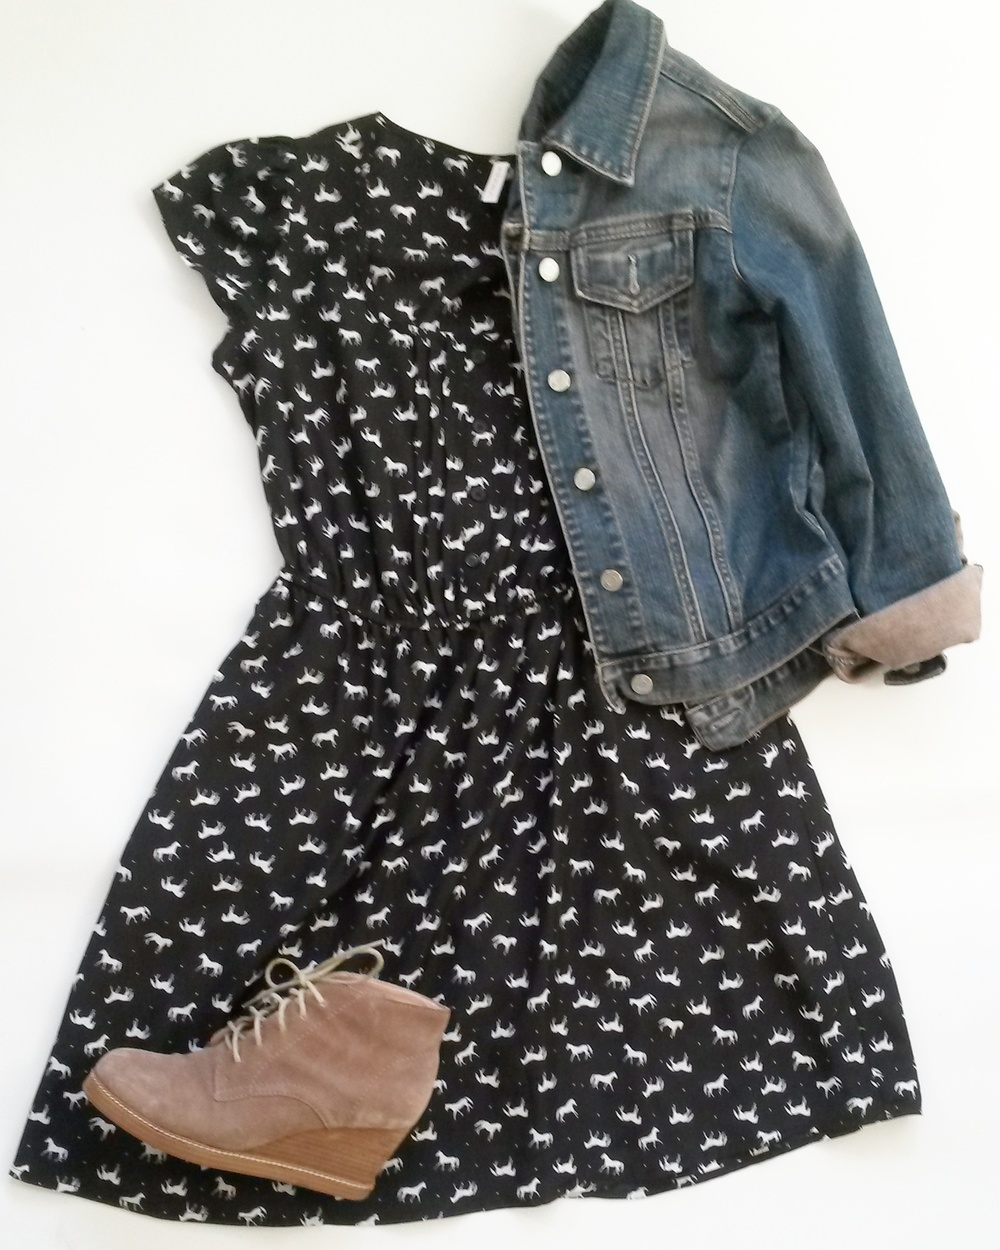 Xhiliration horse dress,  Gap denim jacket, J. Jill booties, all thrifted